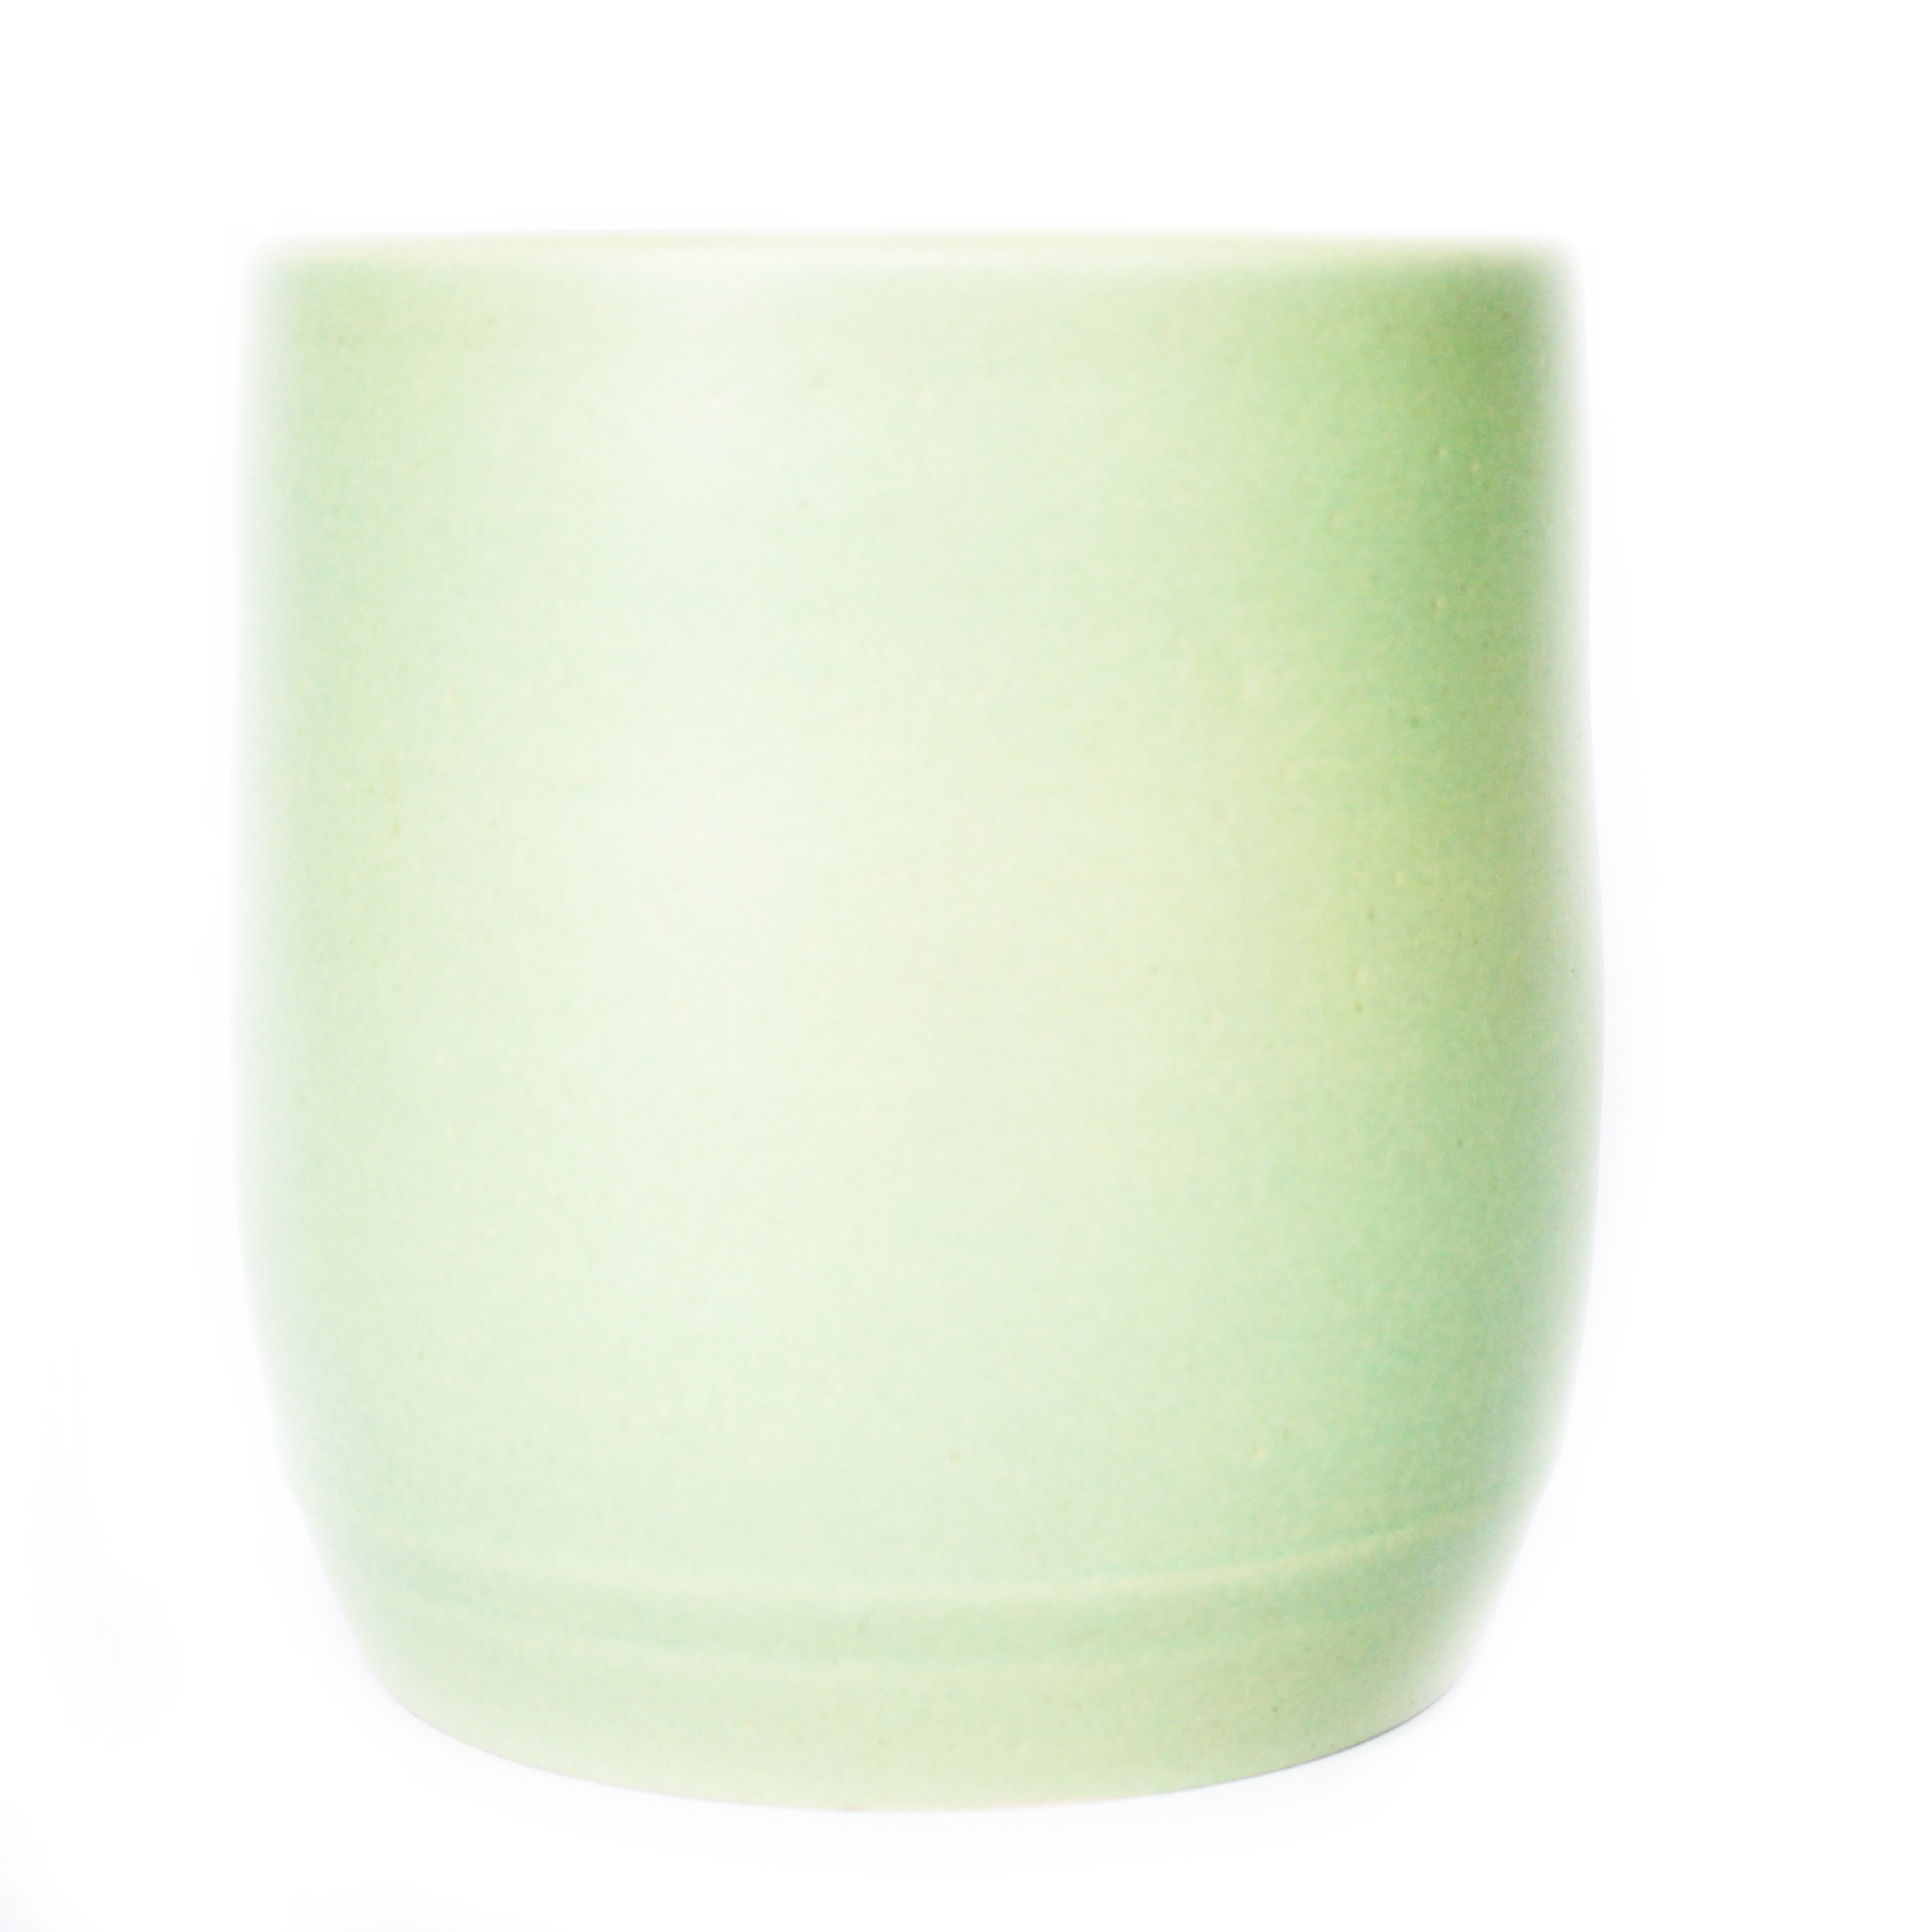 Matt Mint Green Planter